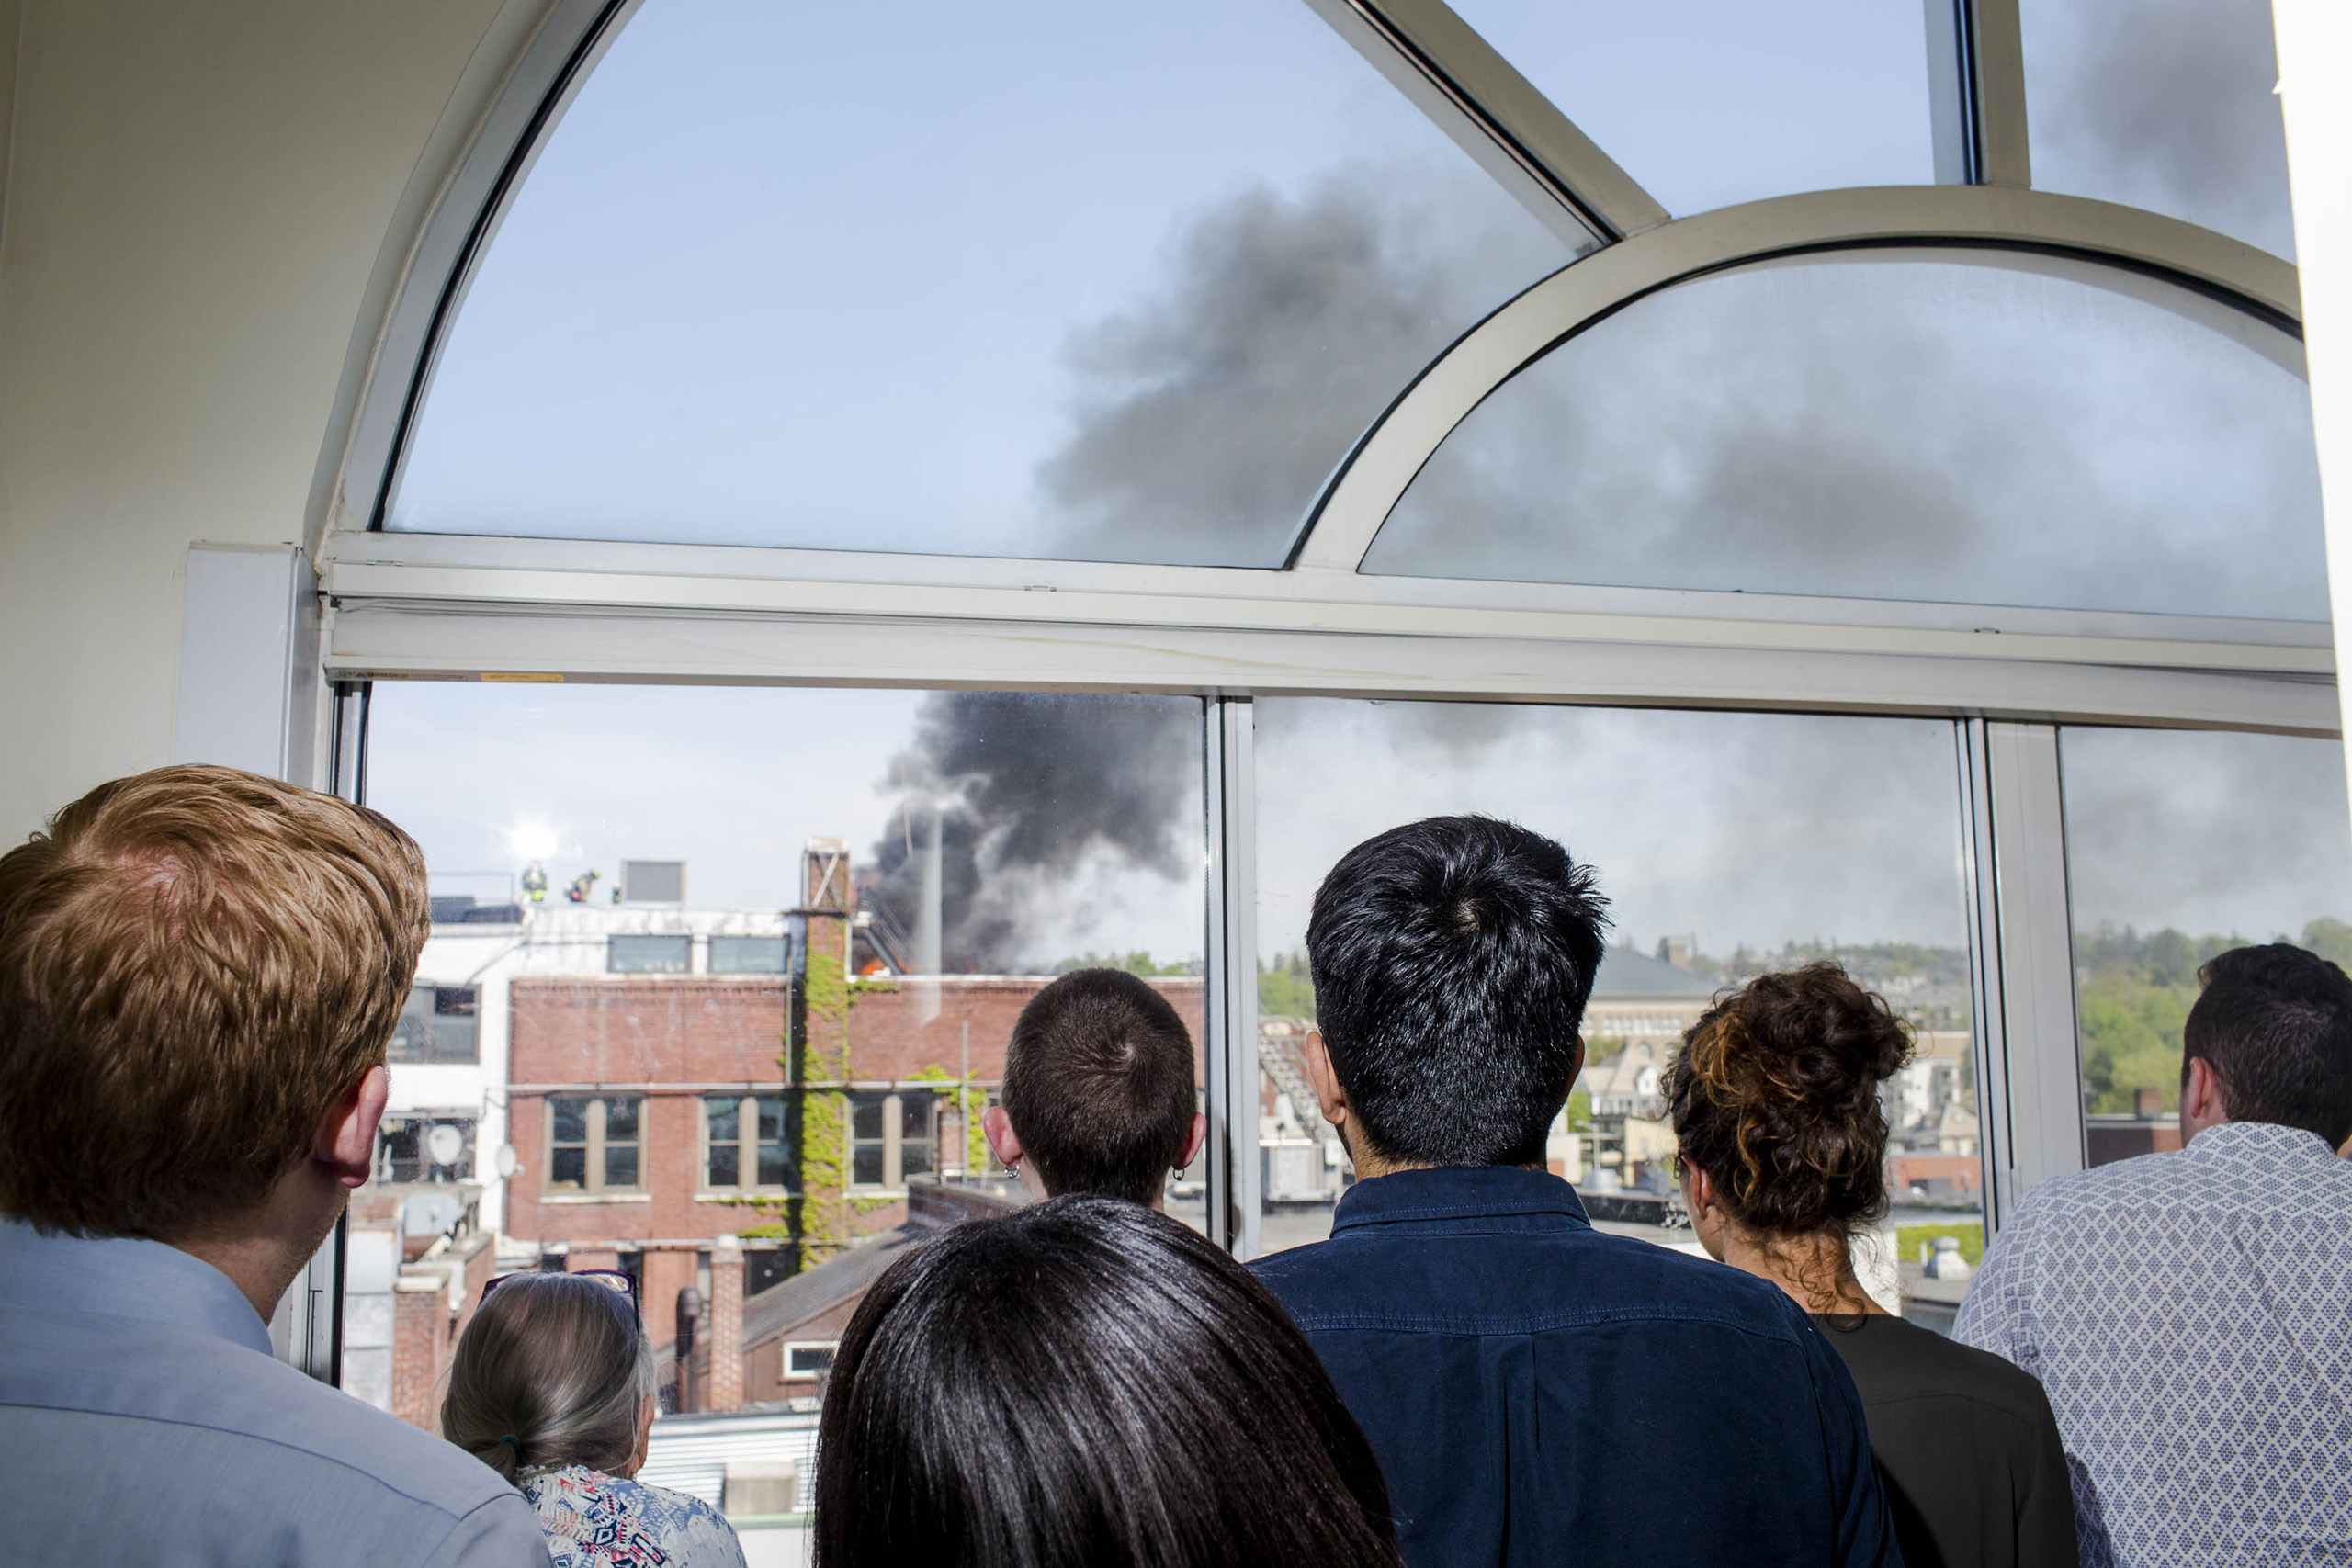 A fire near the campaign headquarters of Bernie Sanders on May 23, 2016, in Burlington, VT.